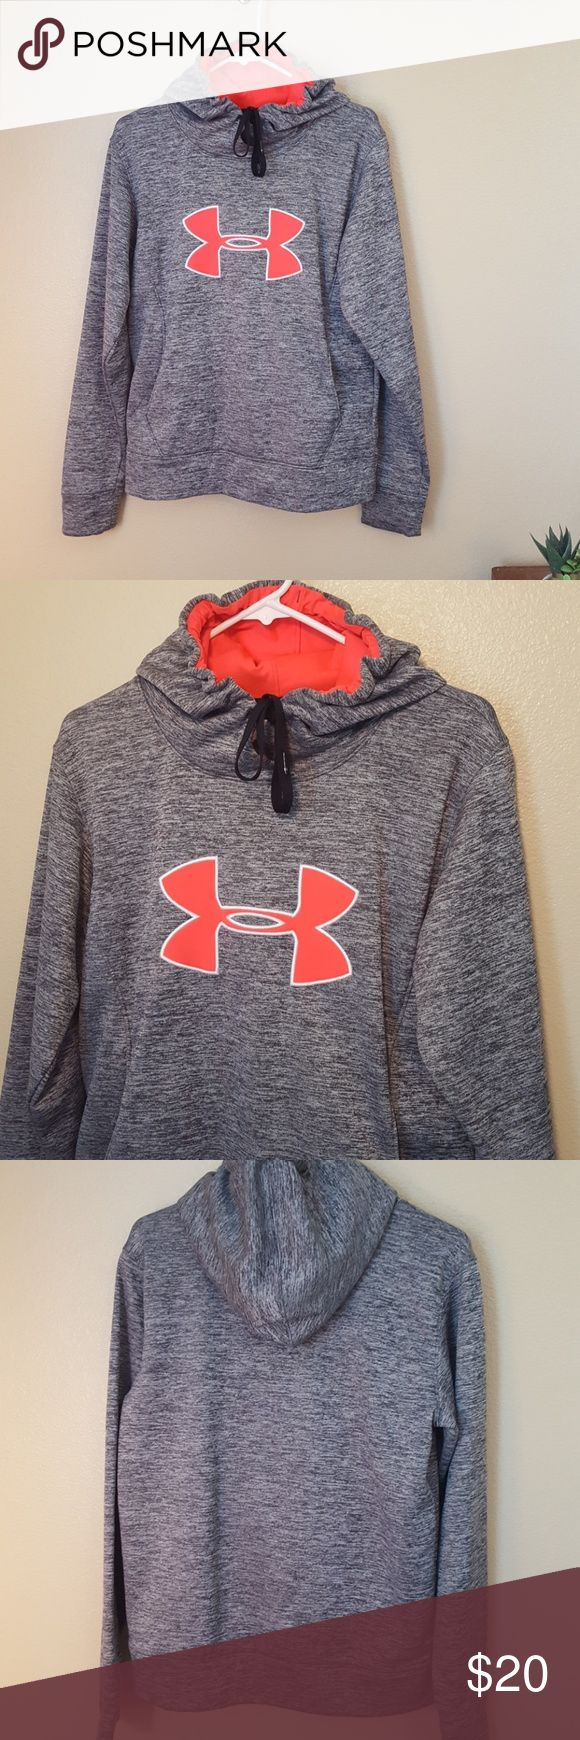 Under Armour women's grey Coral sweatshirt medium Best women's grey sweatshirt is Under Armour brand size medium cold gear. Fleece-lined. One large pocket in front with two hand openings. Drawstring Hood this is in great Under Armour Sweaters